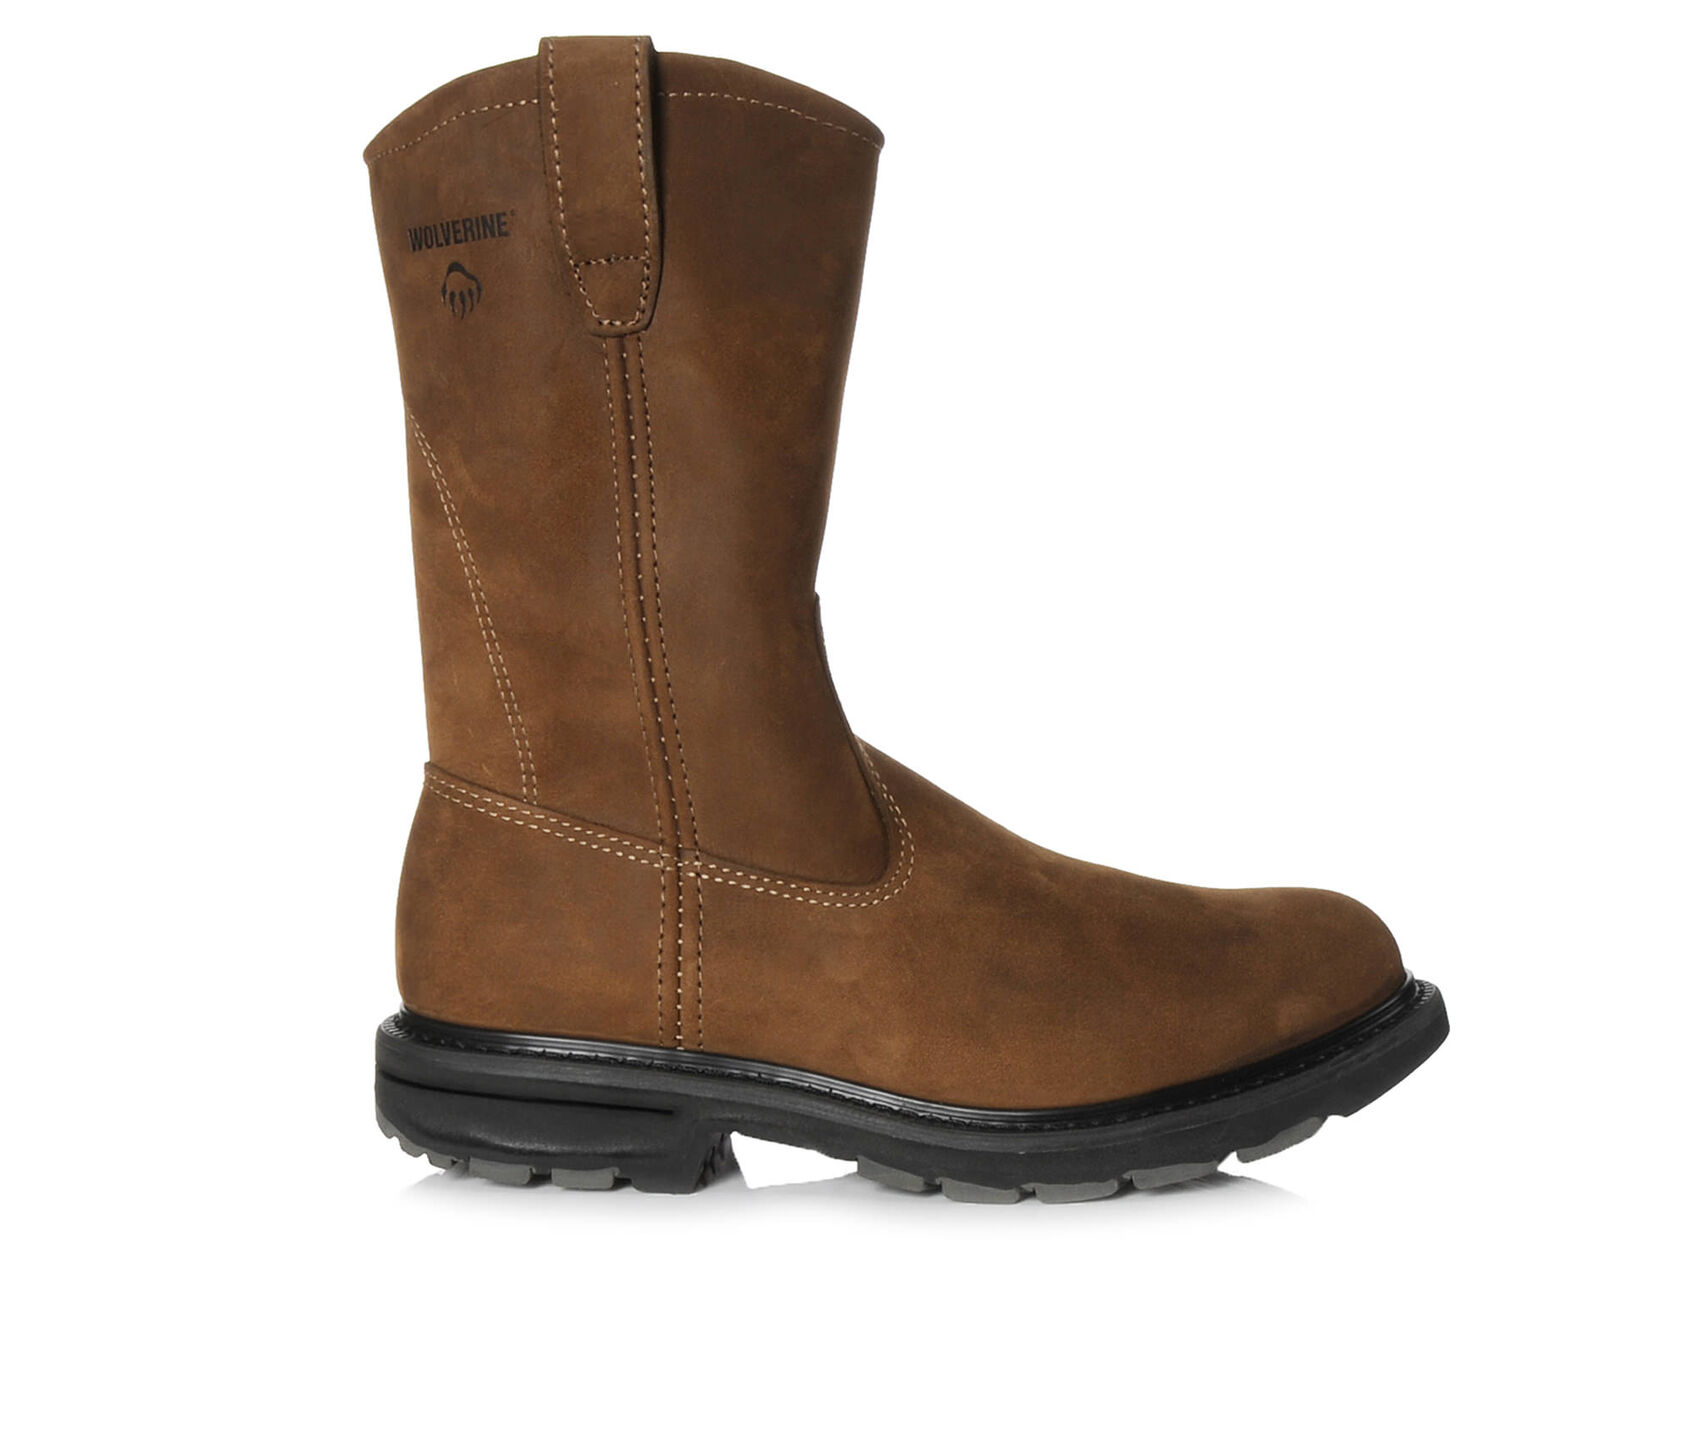 1b11536ad13 Men's Wolverine Wellington 10 In 4727 Work Boots | Shoe Carnival